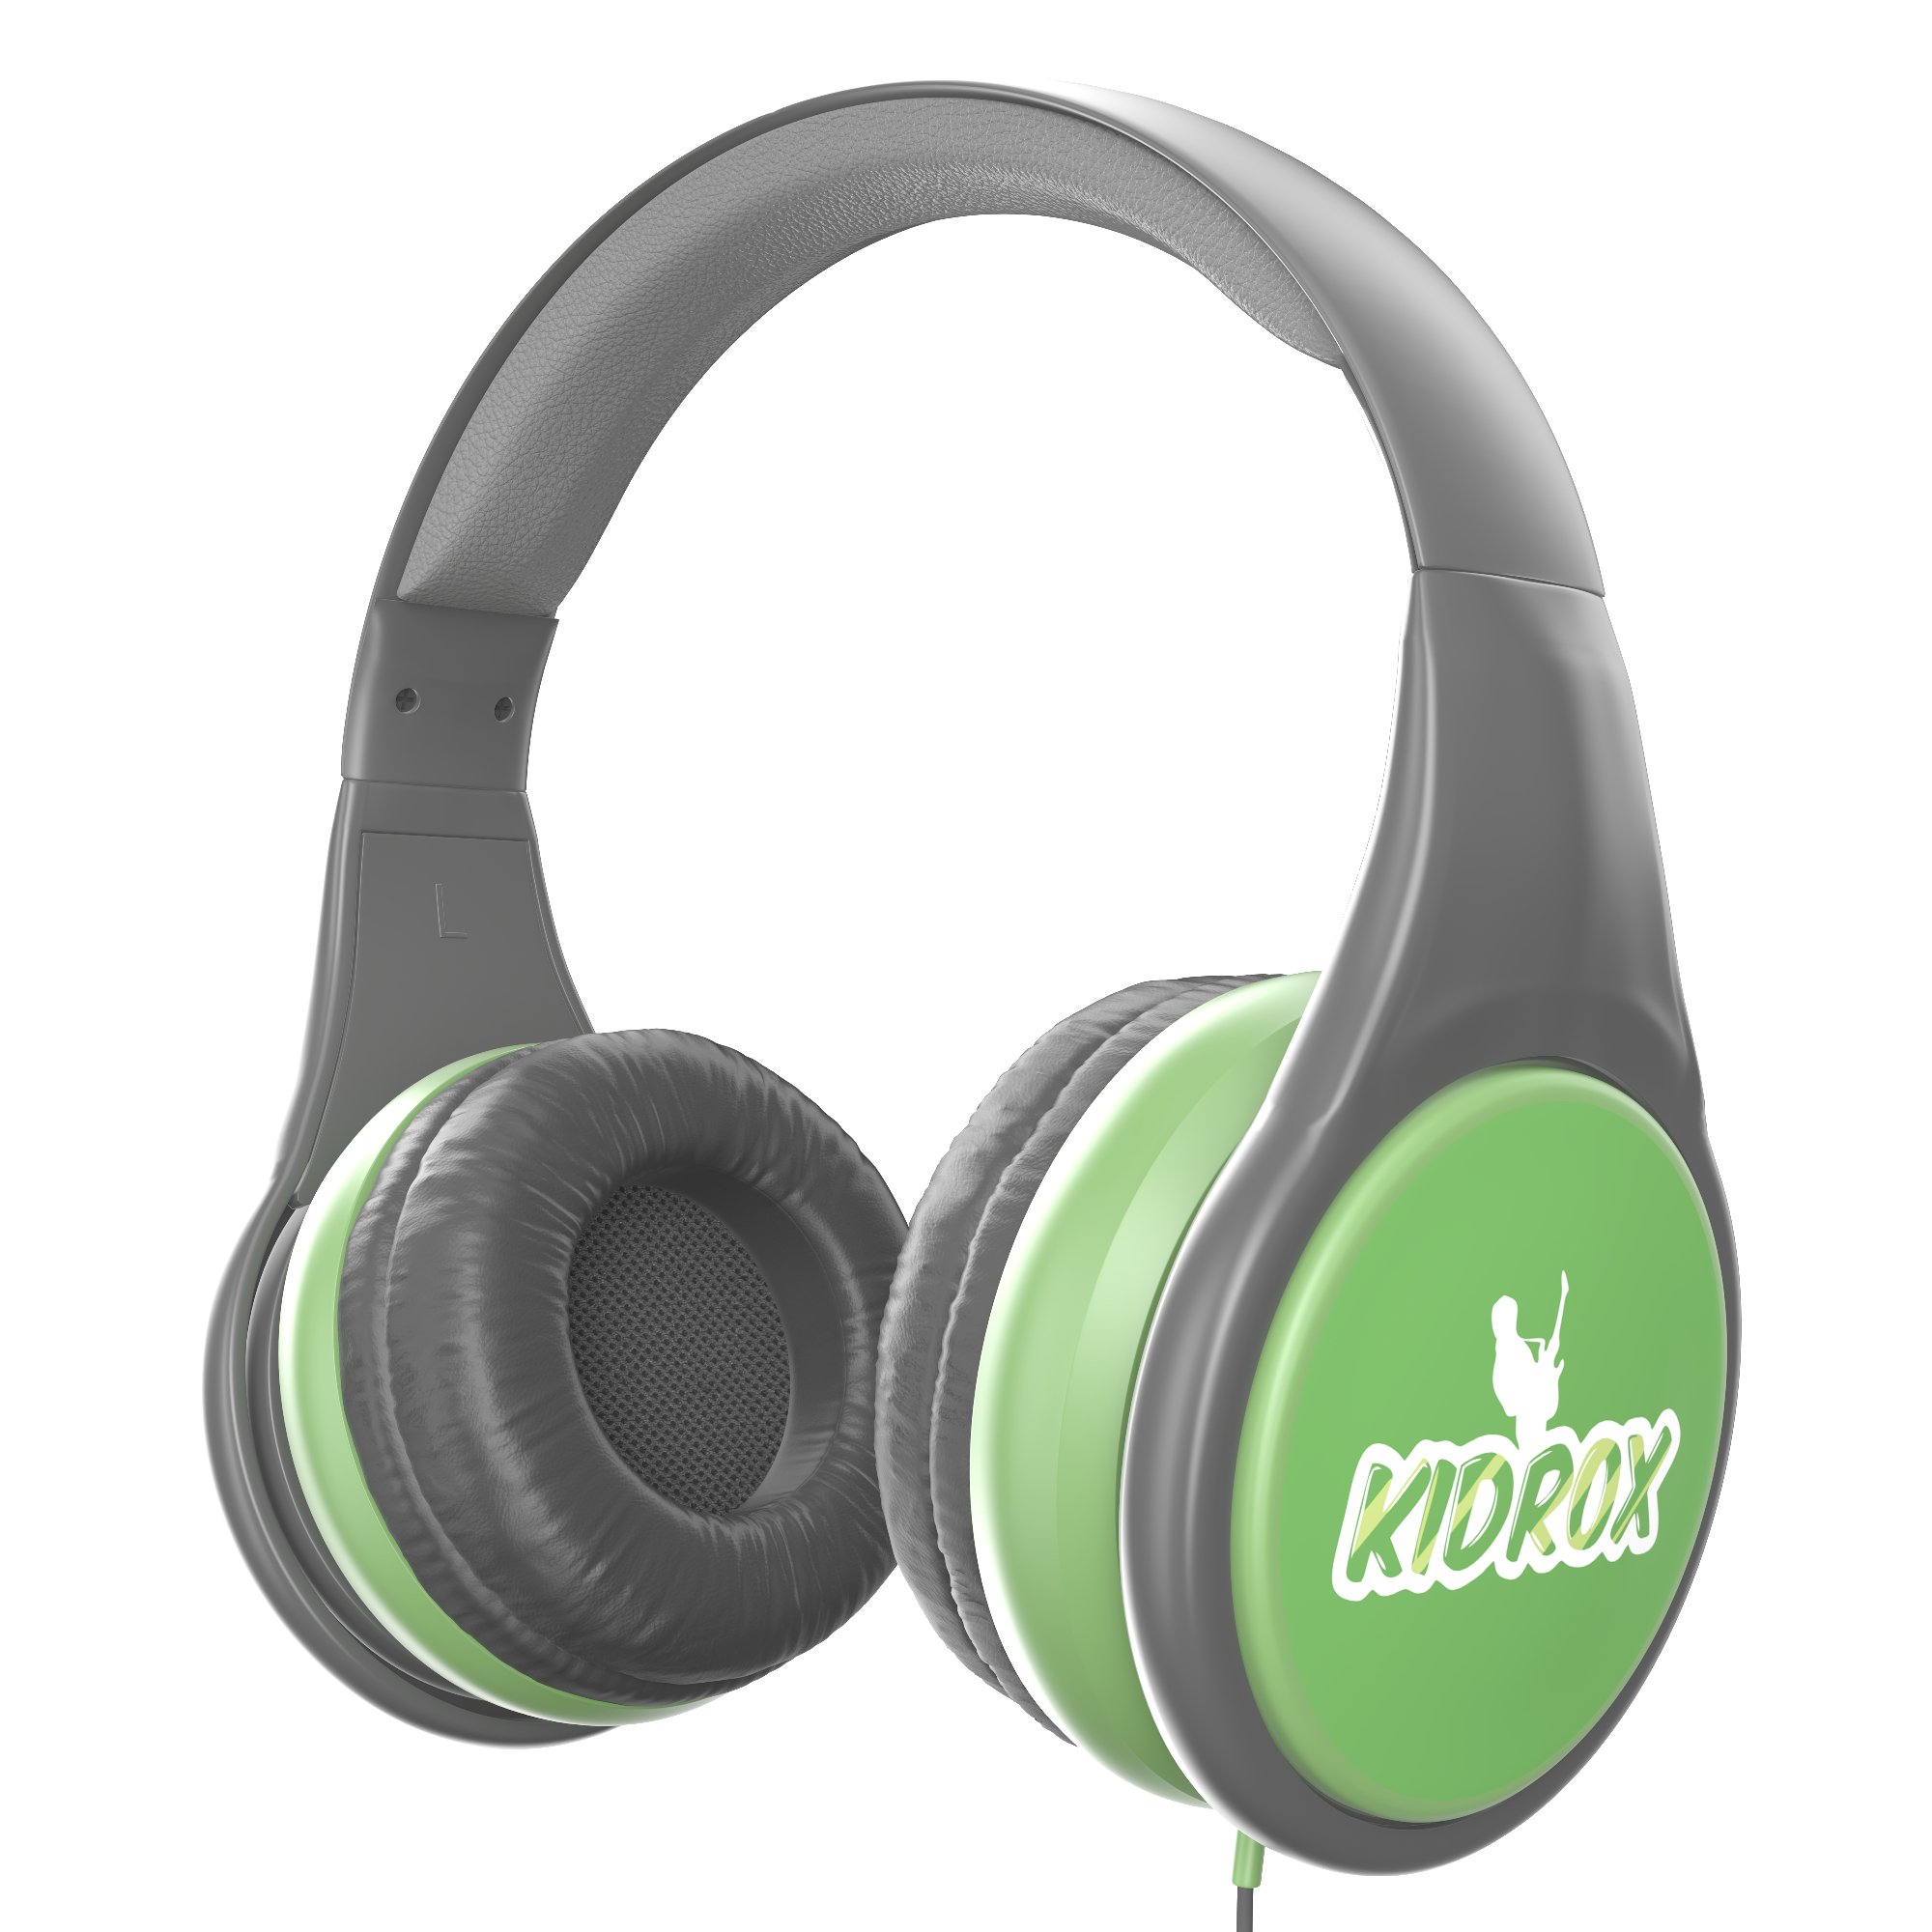 KidRox RS4 Kids Headphones 85dB Volume Limited Adjustable and Safe Hearing Protection Tangle Free Wired On-Ear Earphones For Children Toddler Boys Girls (Green/Gray) by Kidrox